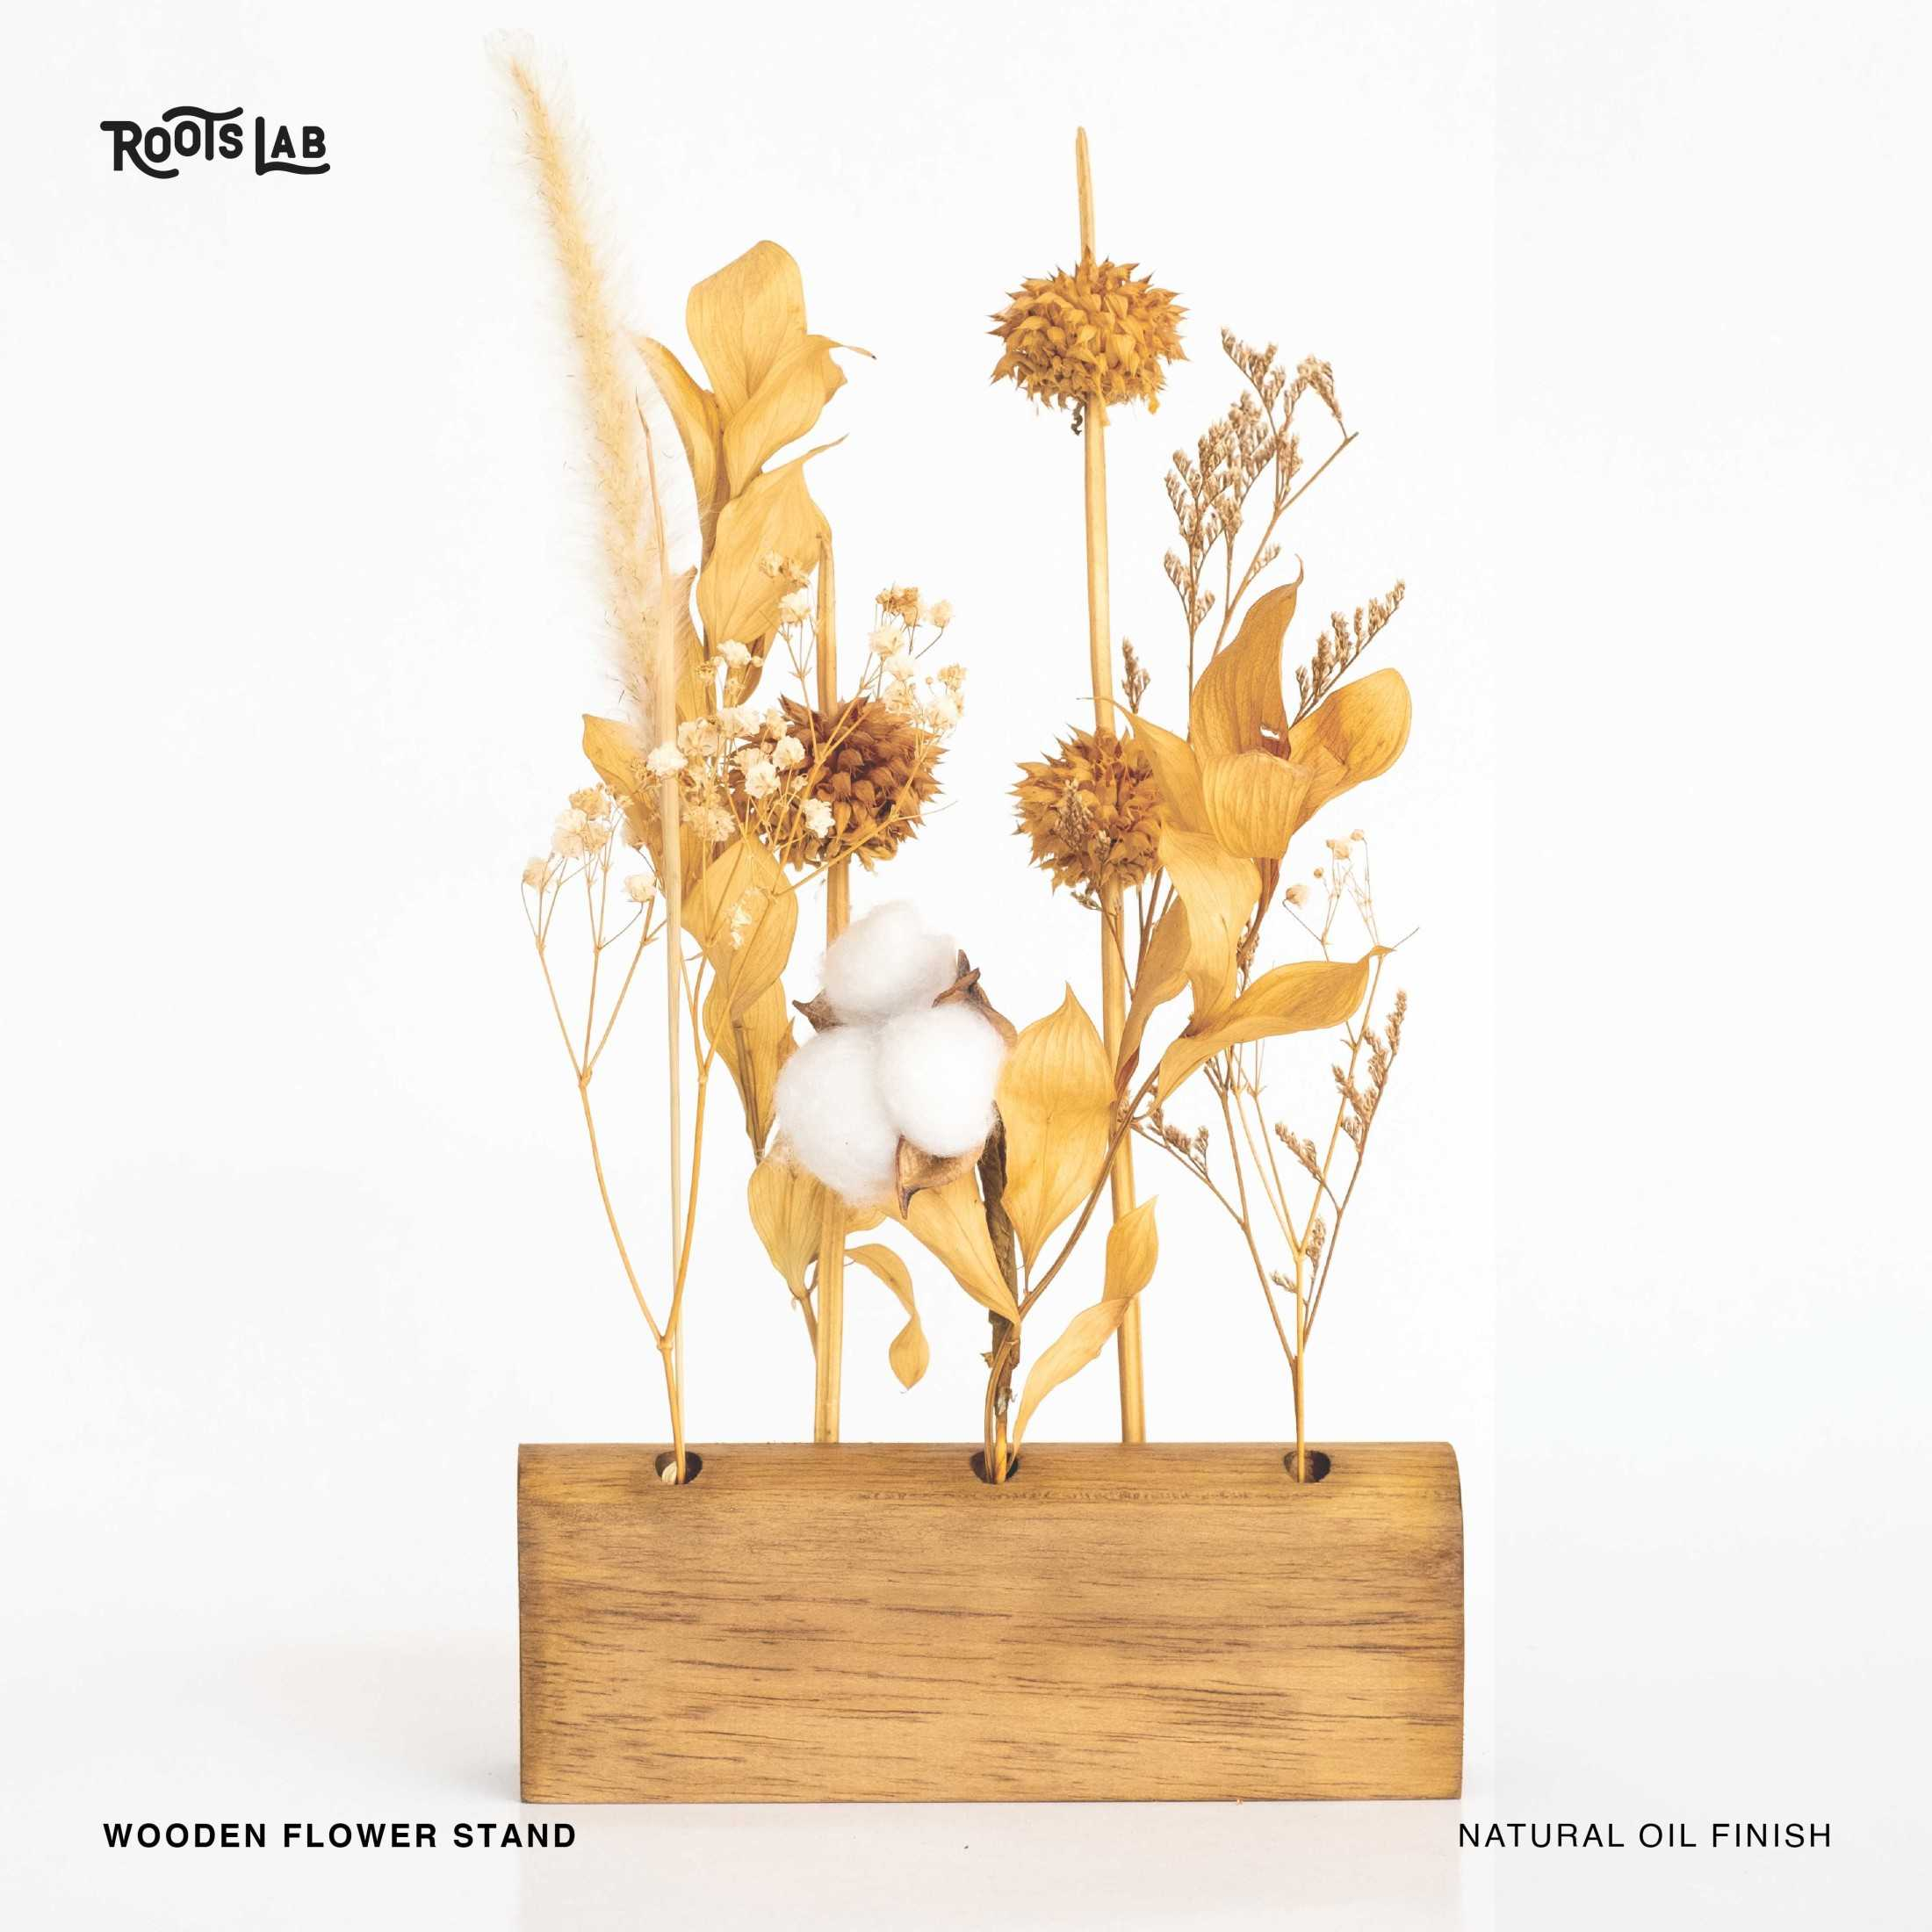 Rootslab Furniture & Craft Project Bekasi, Kota Bks, Jawa Barat, Indonesia Bekasi, Kota Bks, Jawa Barat, Indonesia Wooden Flower Stand Contemporary 112999